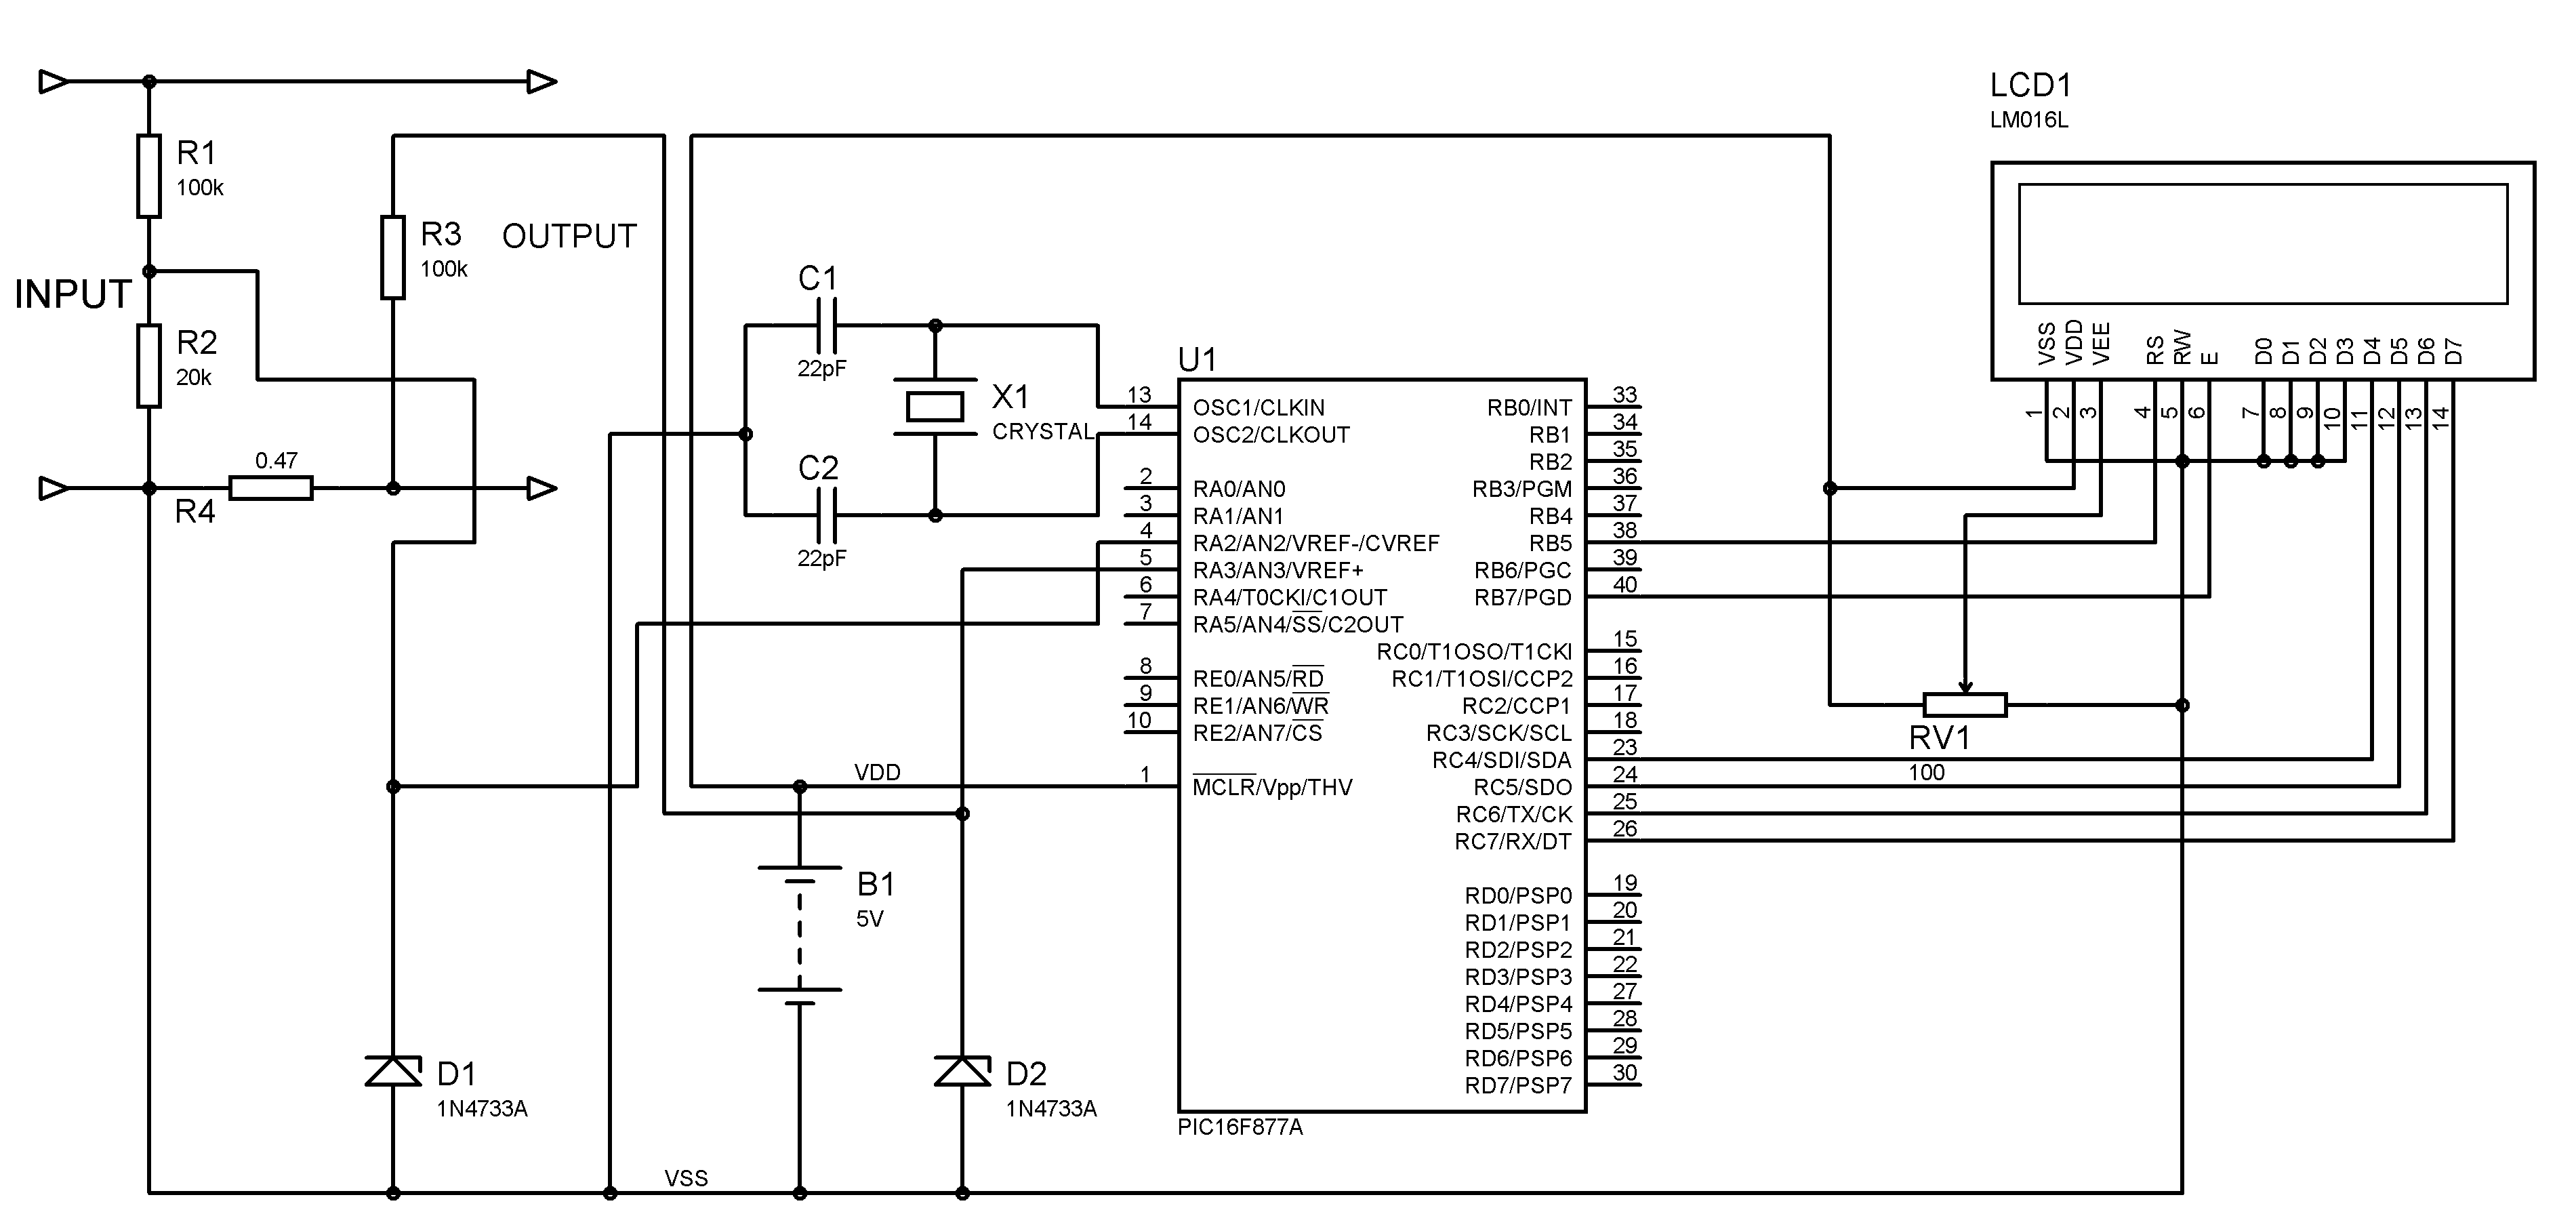 Voltmeter And Ammeter Using Pic Microcontroller Digital Clock 8051 Lcd Display Mini Project Circuit Diagram